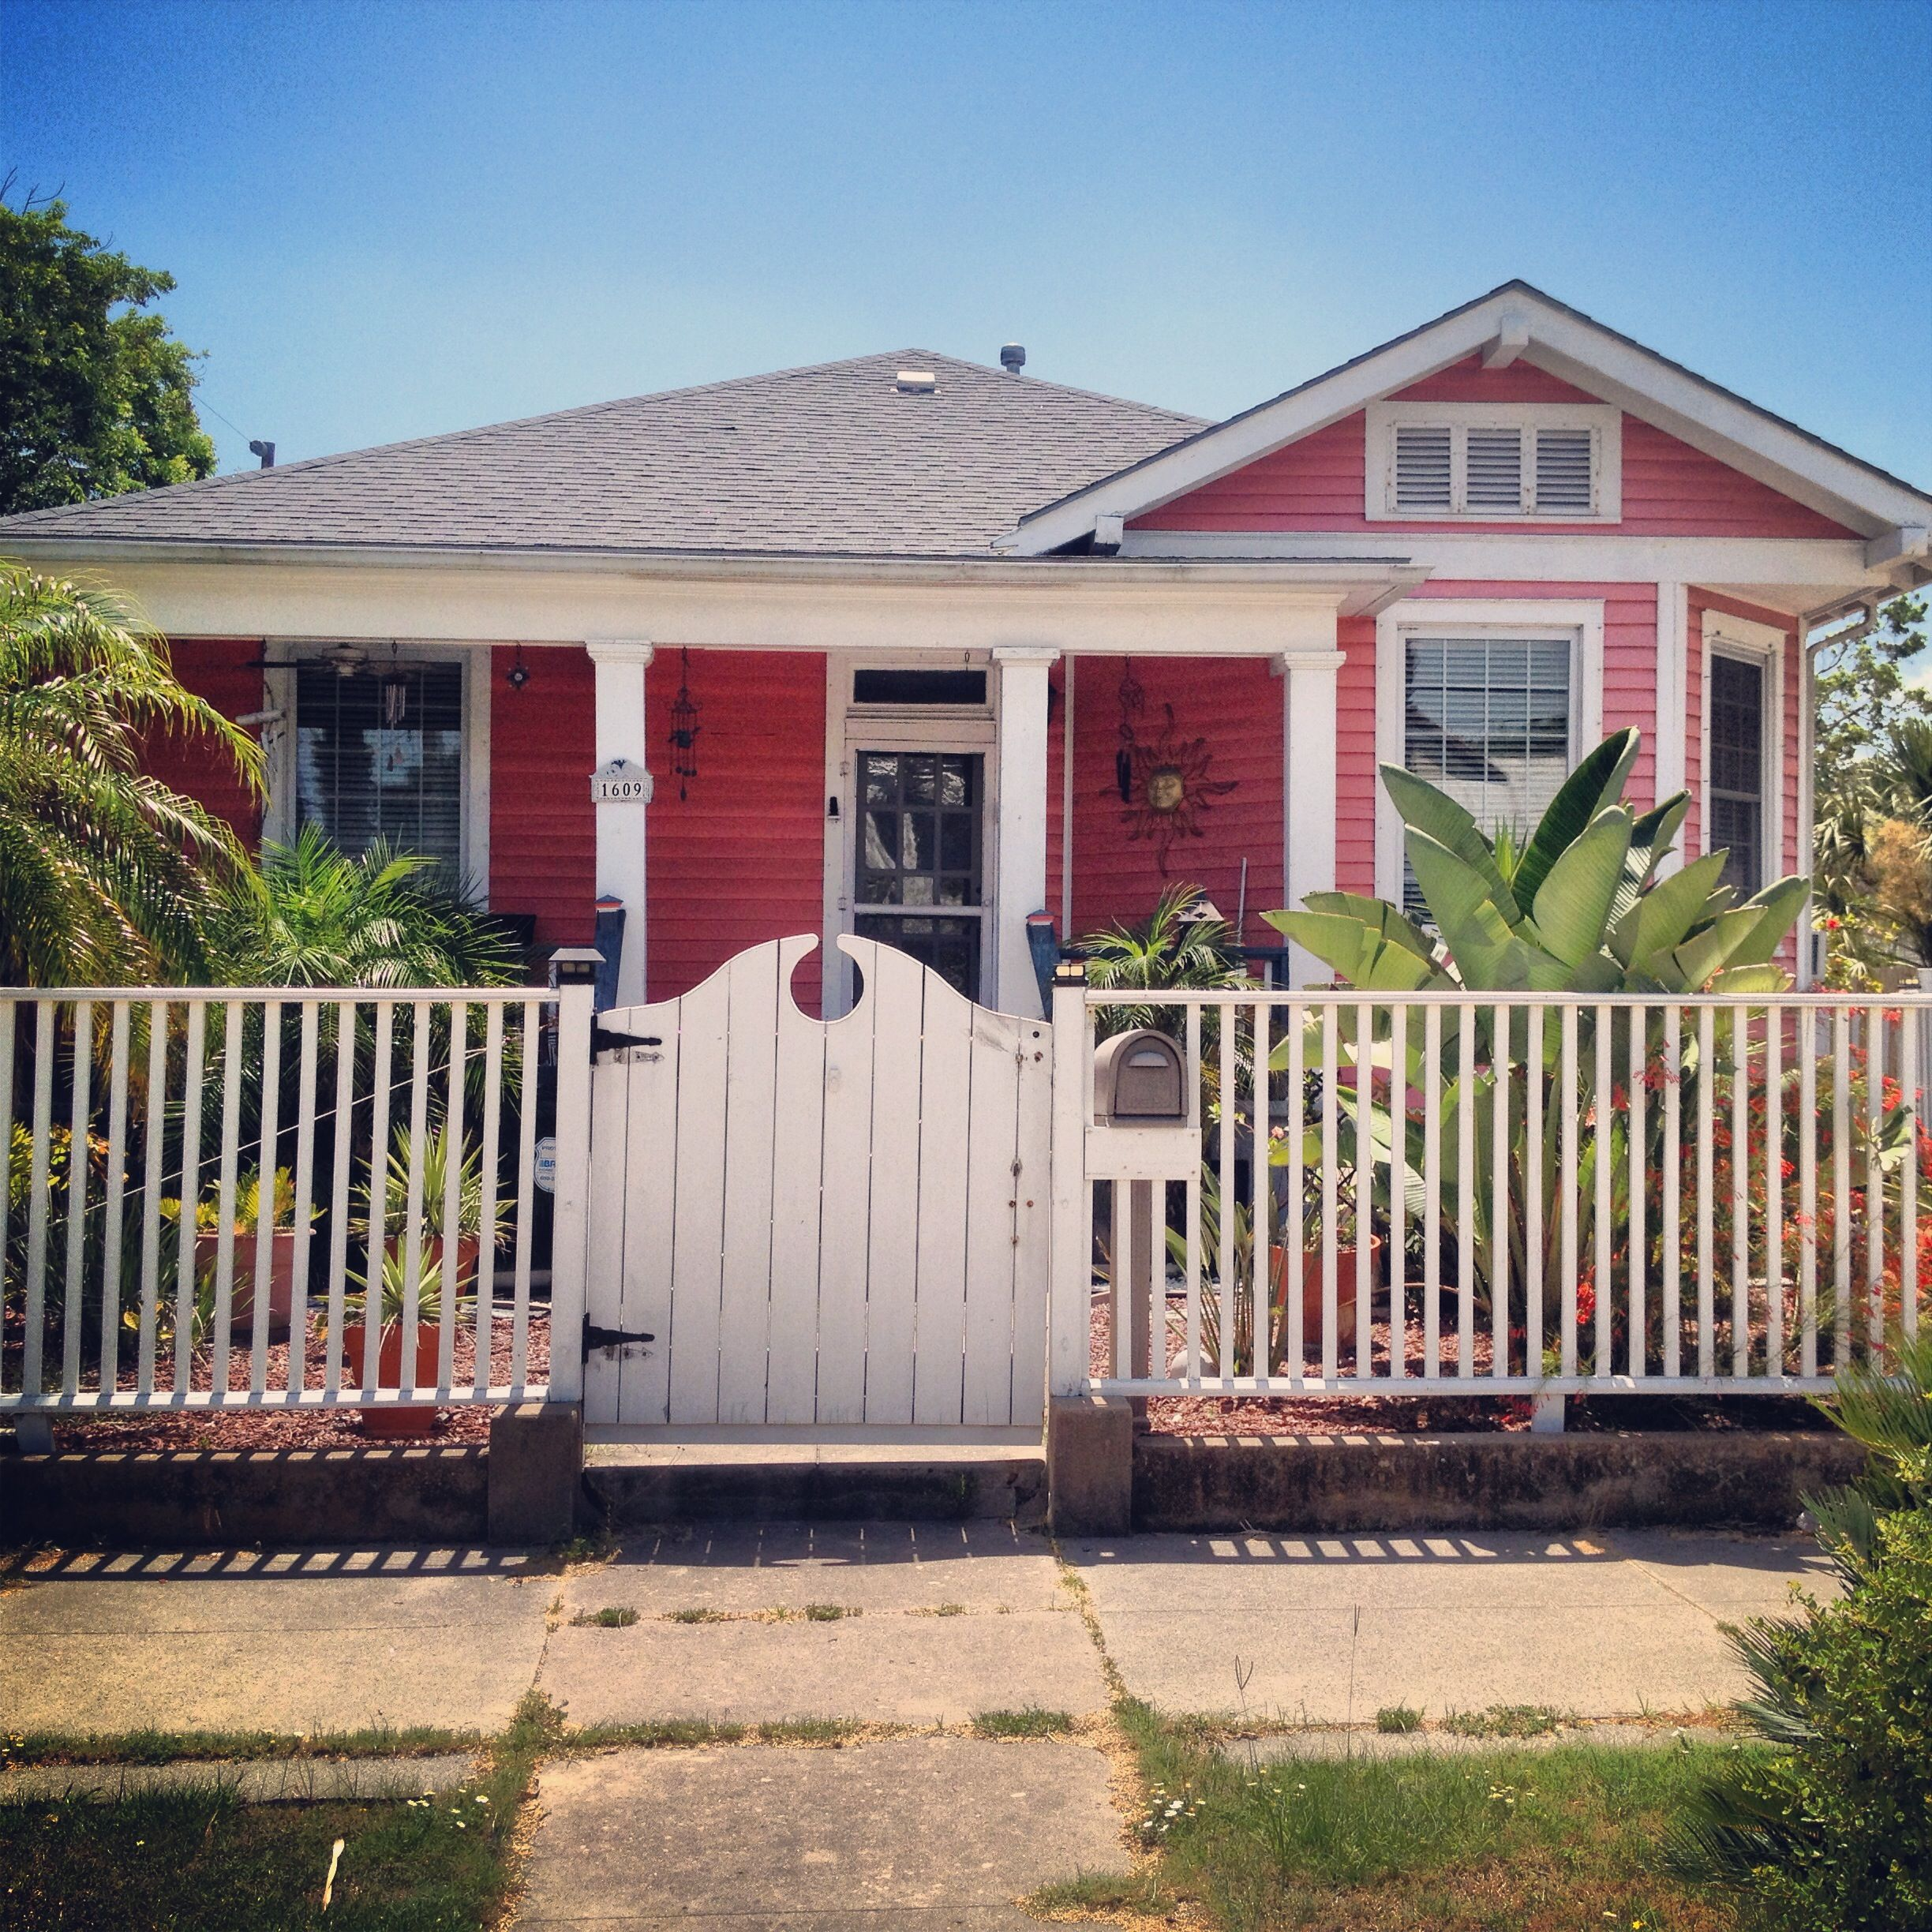 Small beach house in Galveston, Texas | Outside Looking On ...